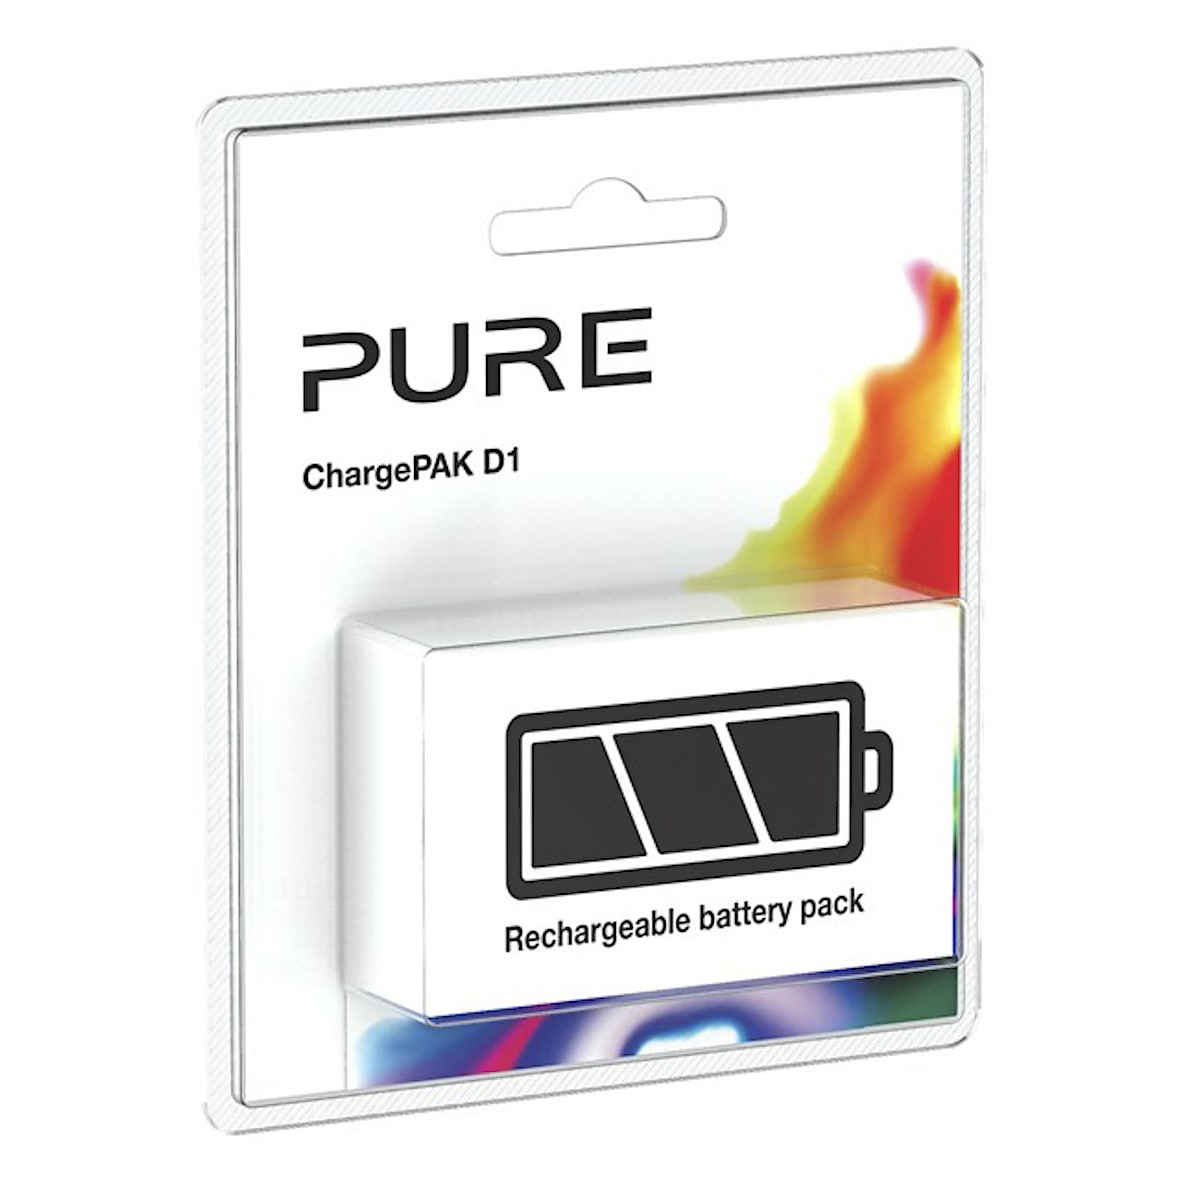 Pure Chargepak D1 Rechargeable Battery Pack